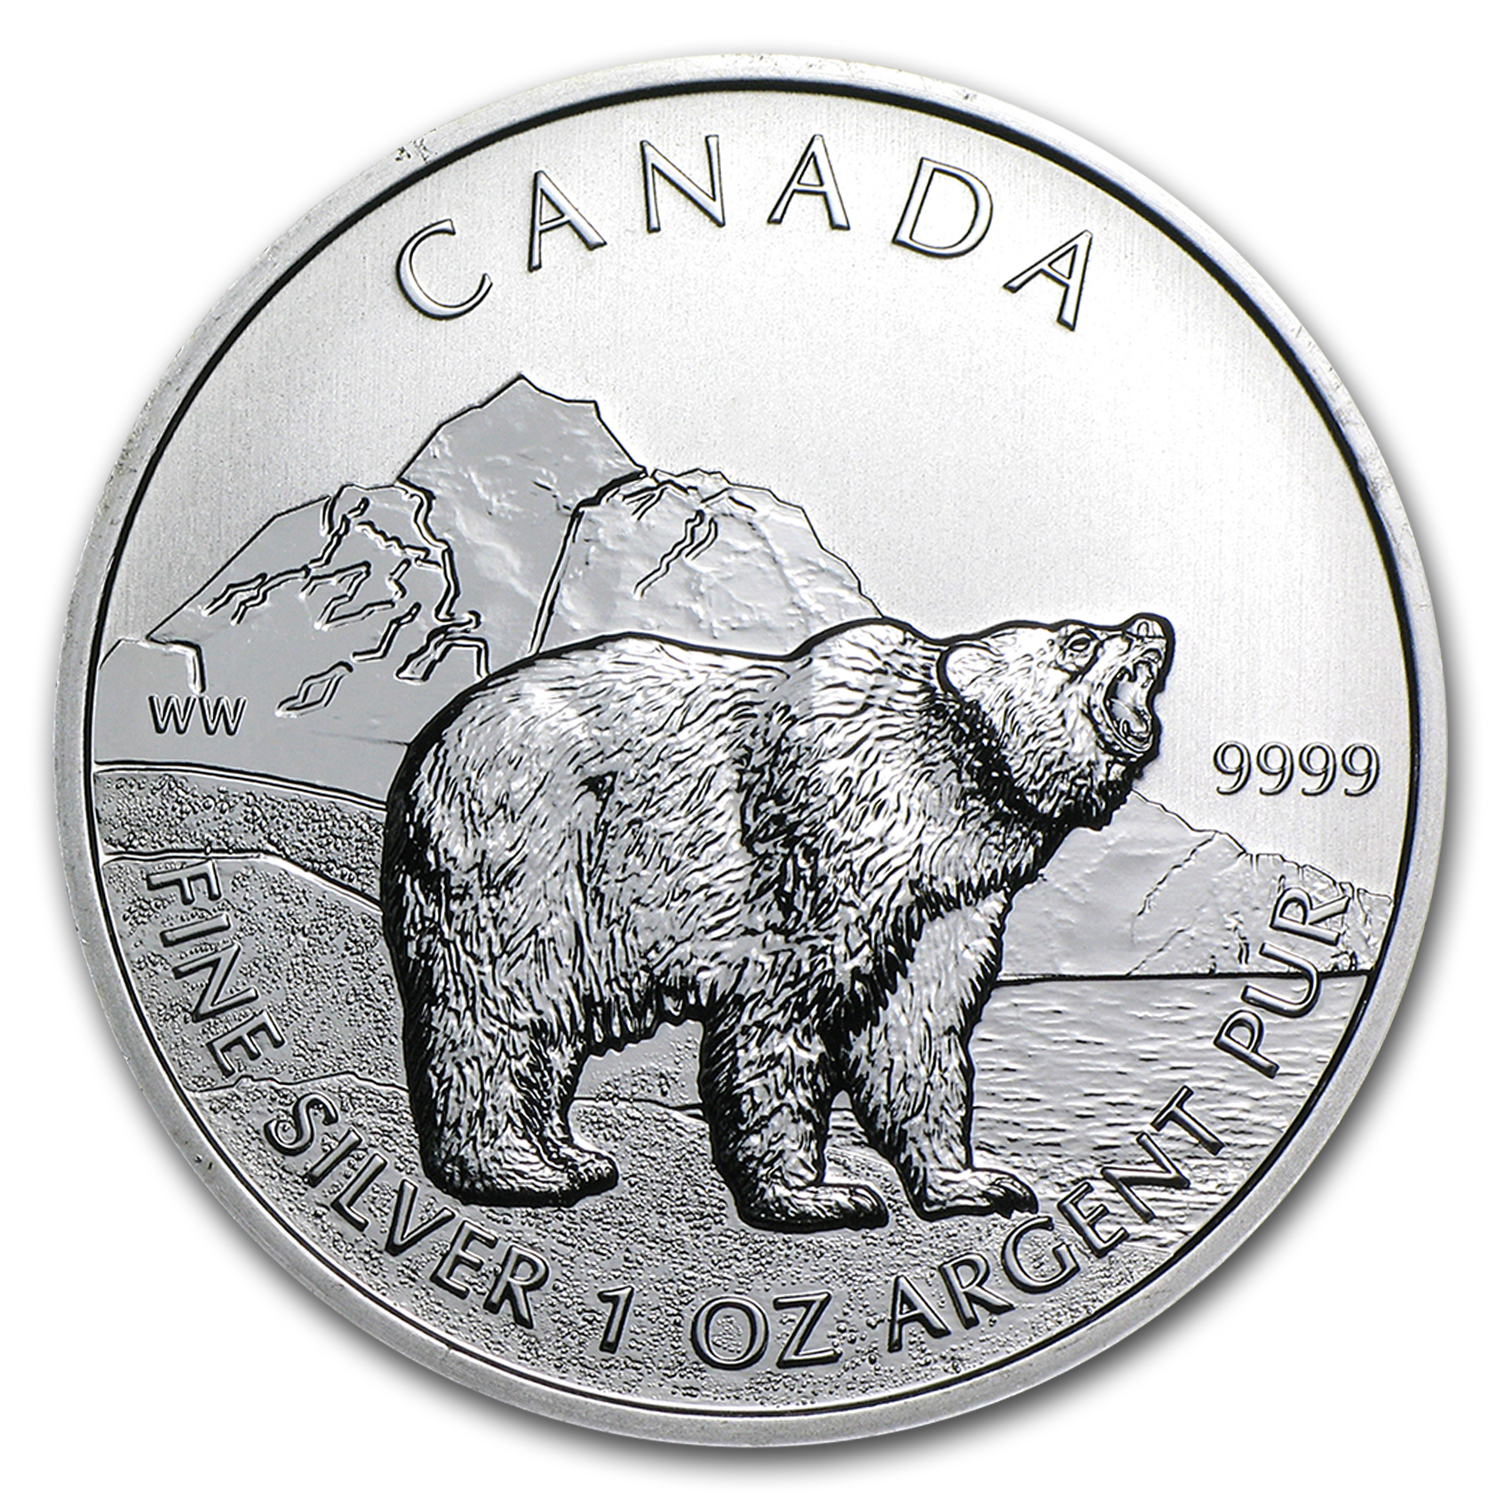 2011 Canada 1 oz Silver Wildlife Series Grizzly